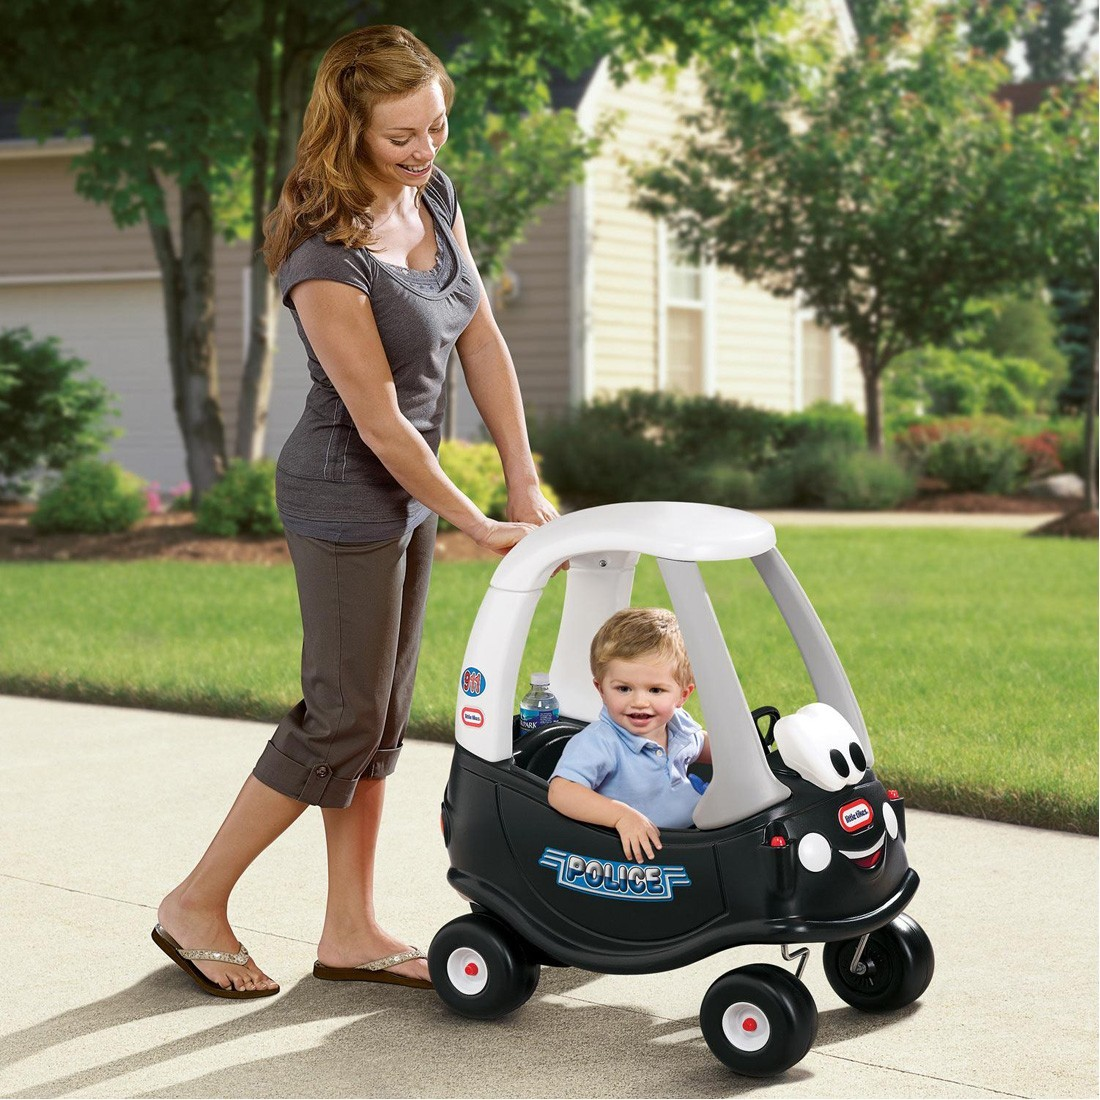 Shop Little Tikes Patrol Police Car Little Tikes Delivered To Your Home The Outfit [ 1100 x 1100 Pixel ]